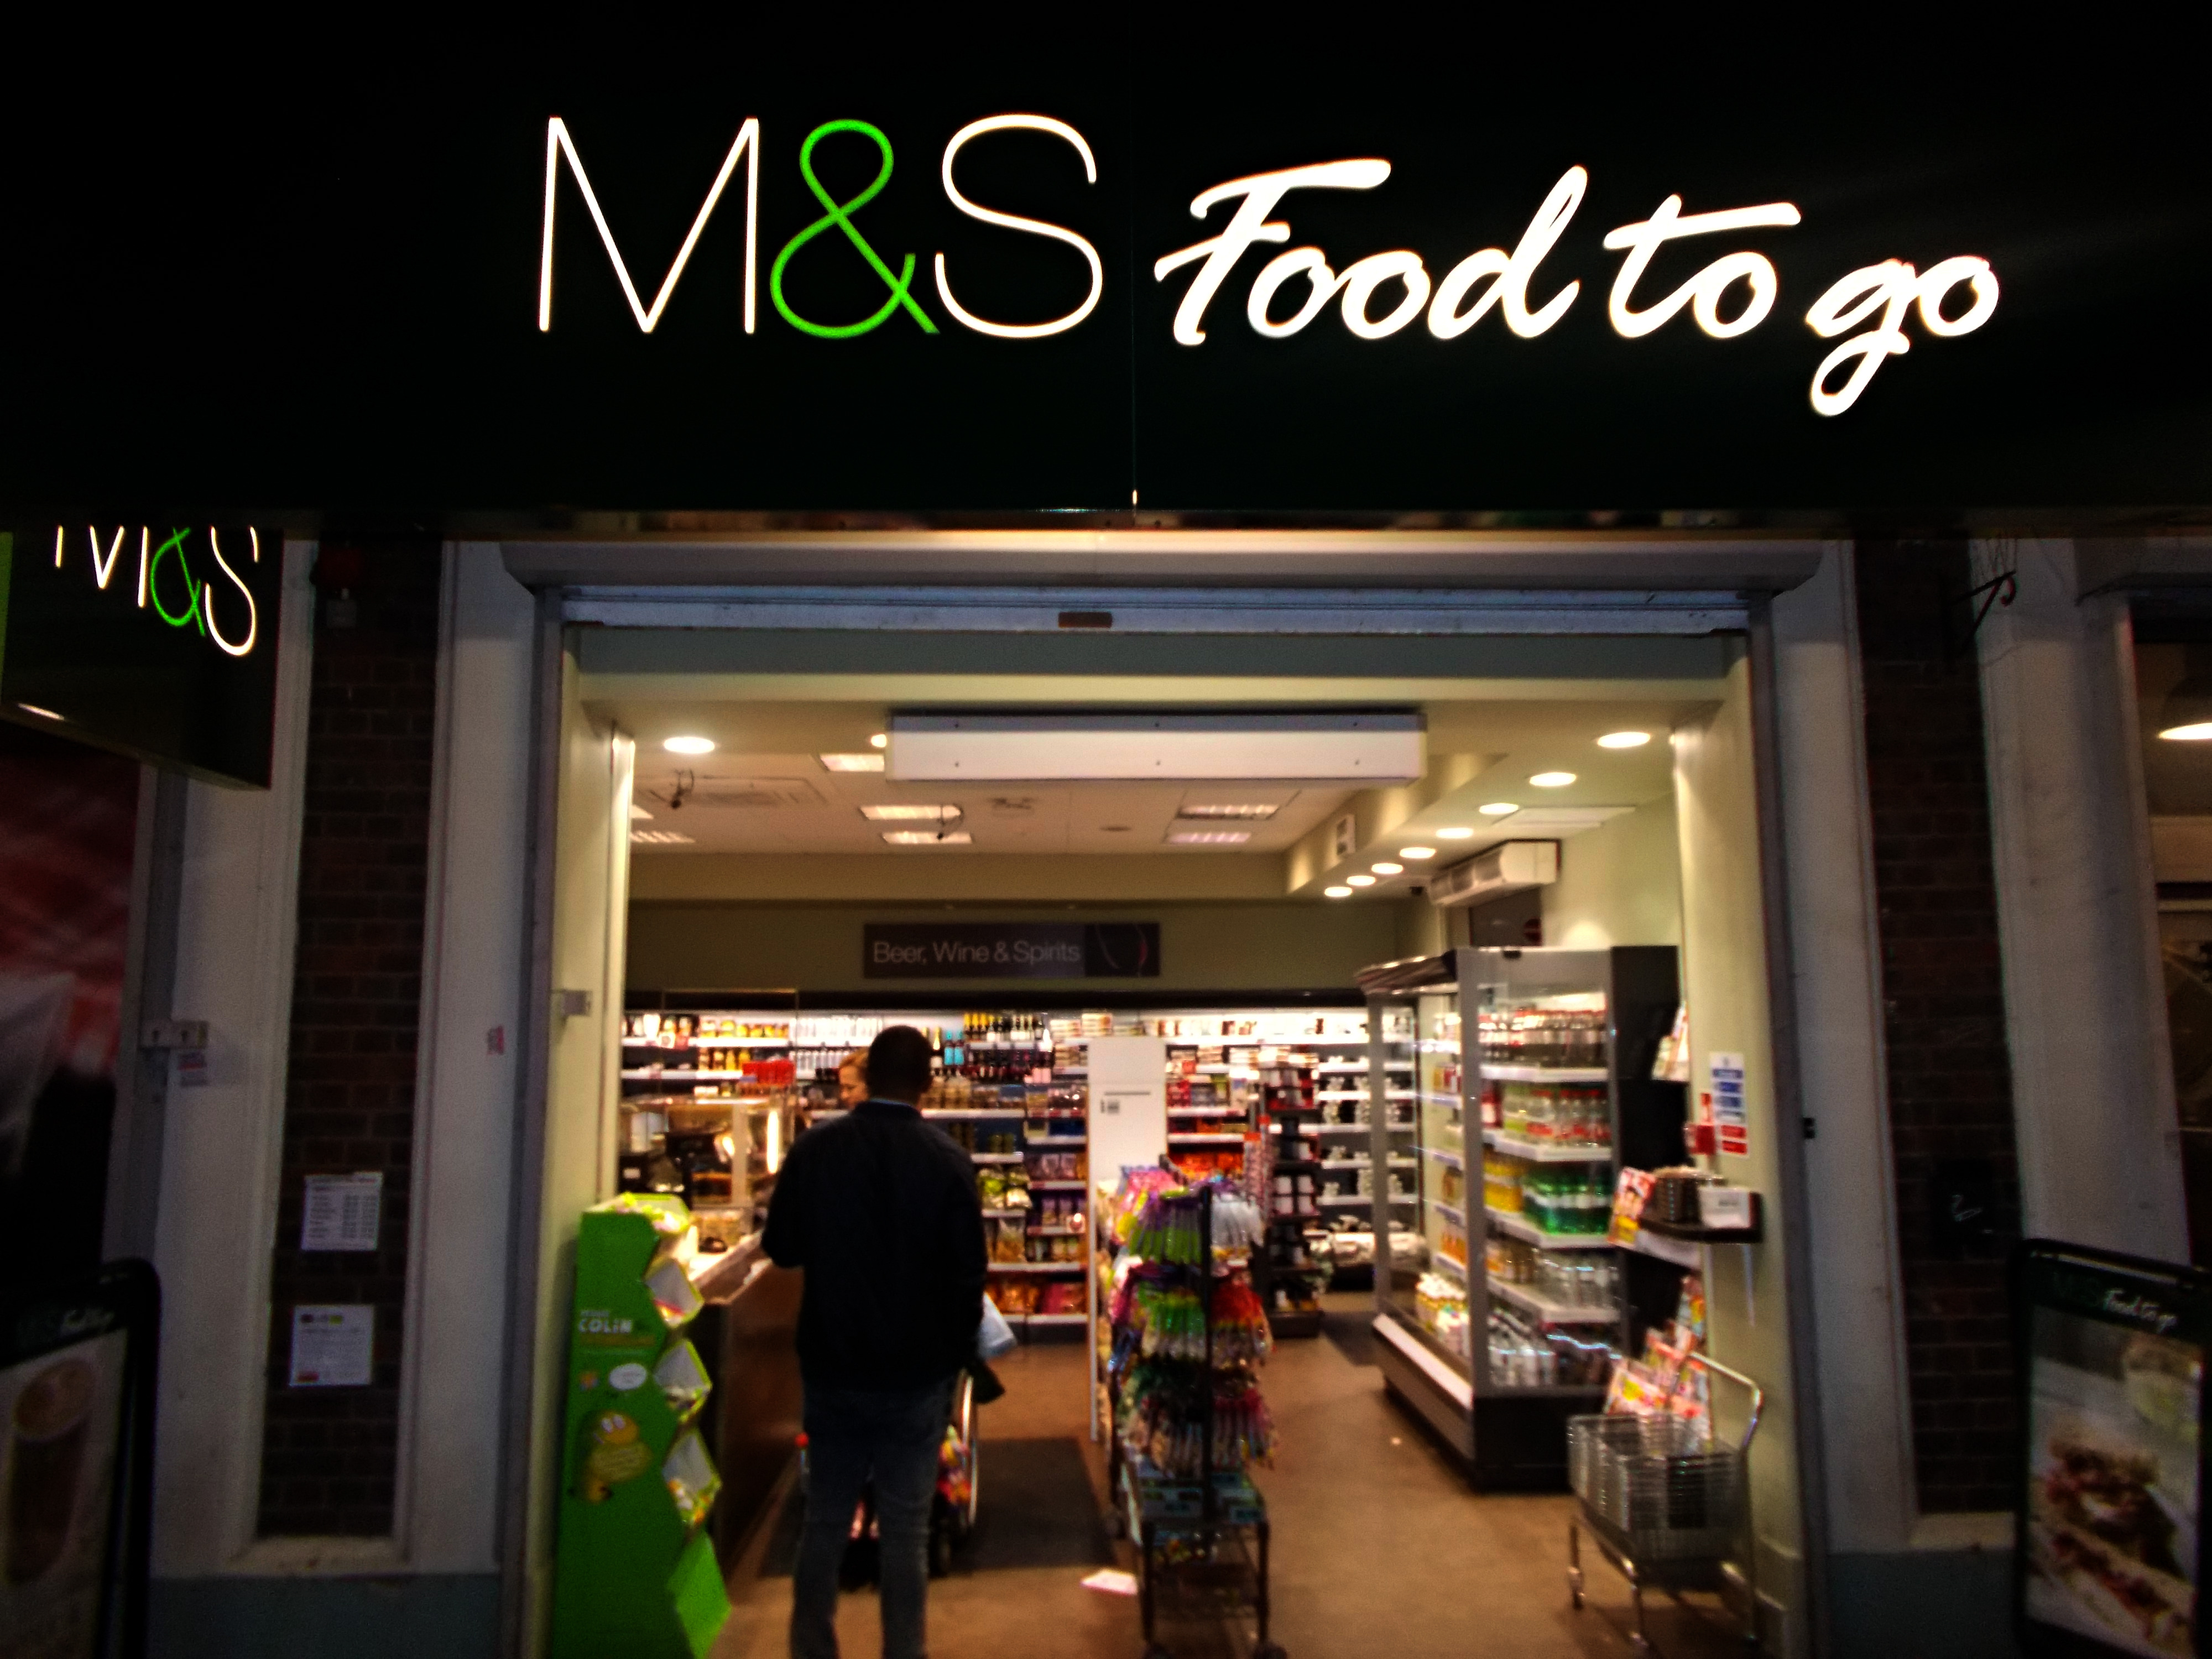 M&S_Food_to_Go,_SUTTON,_Surrey,_Greater_London